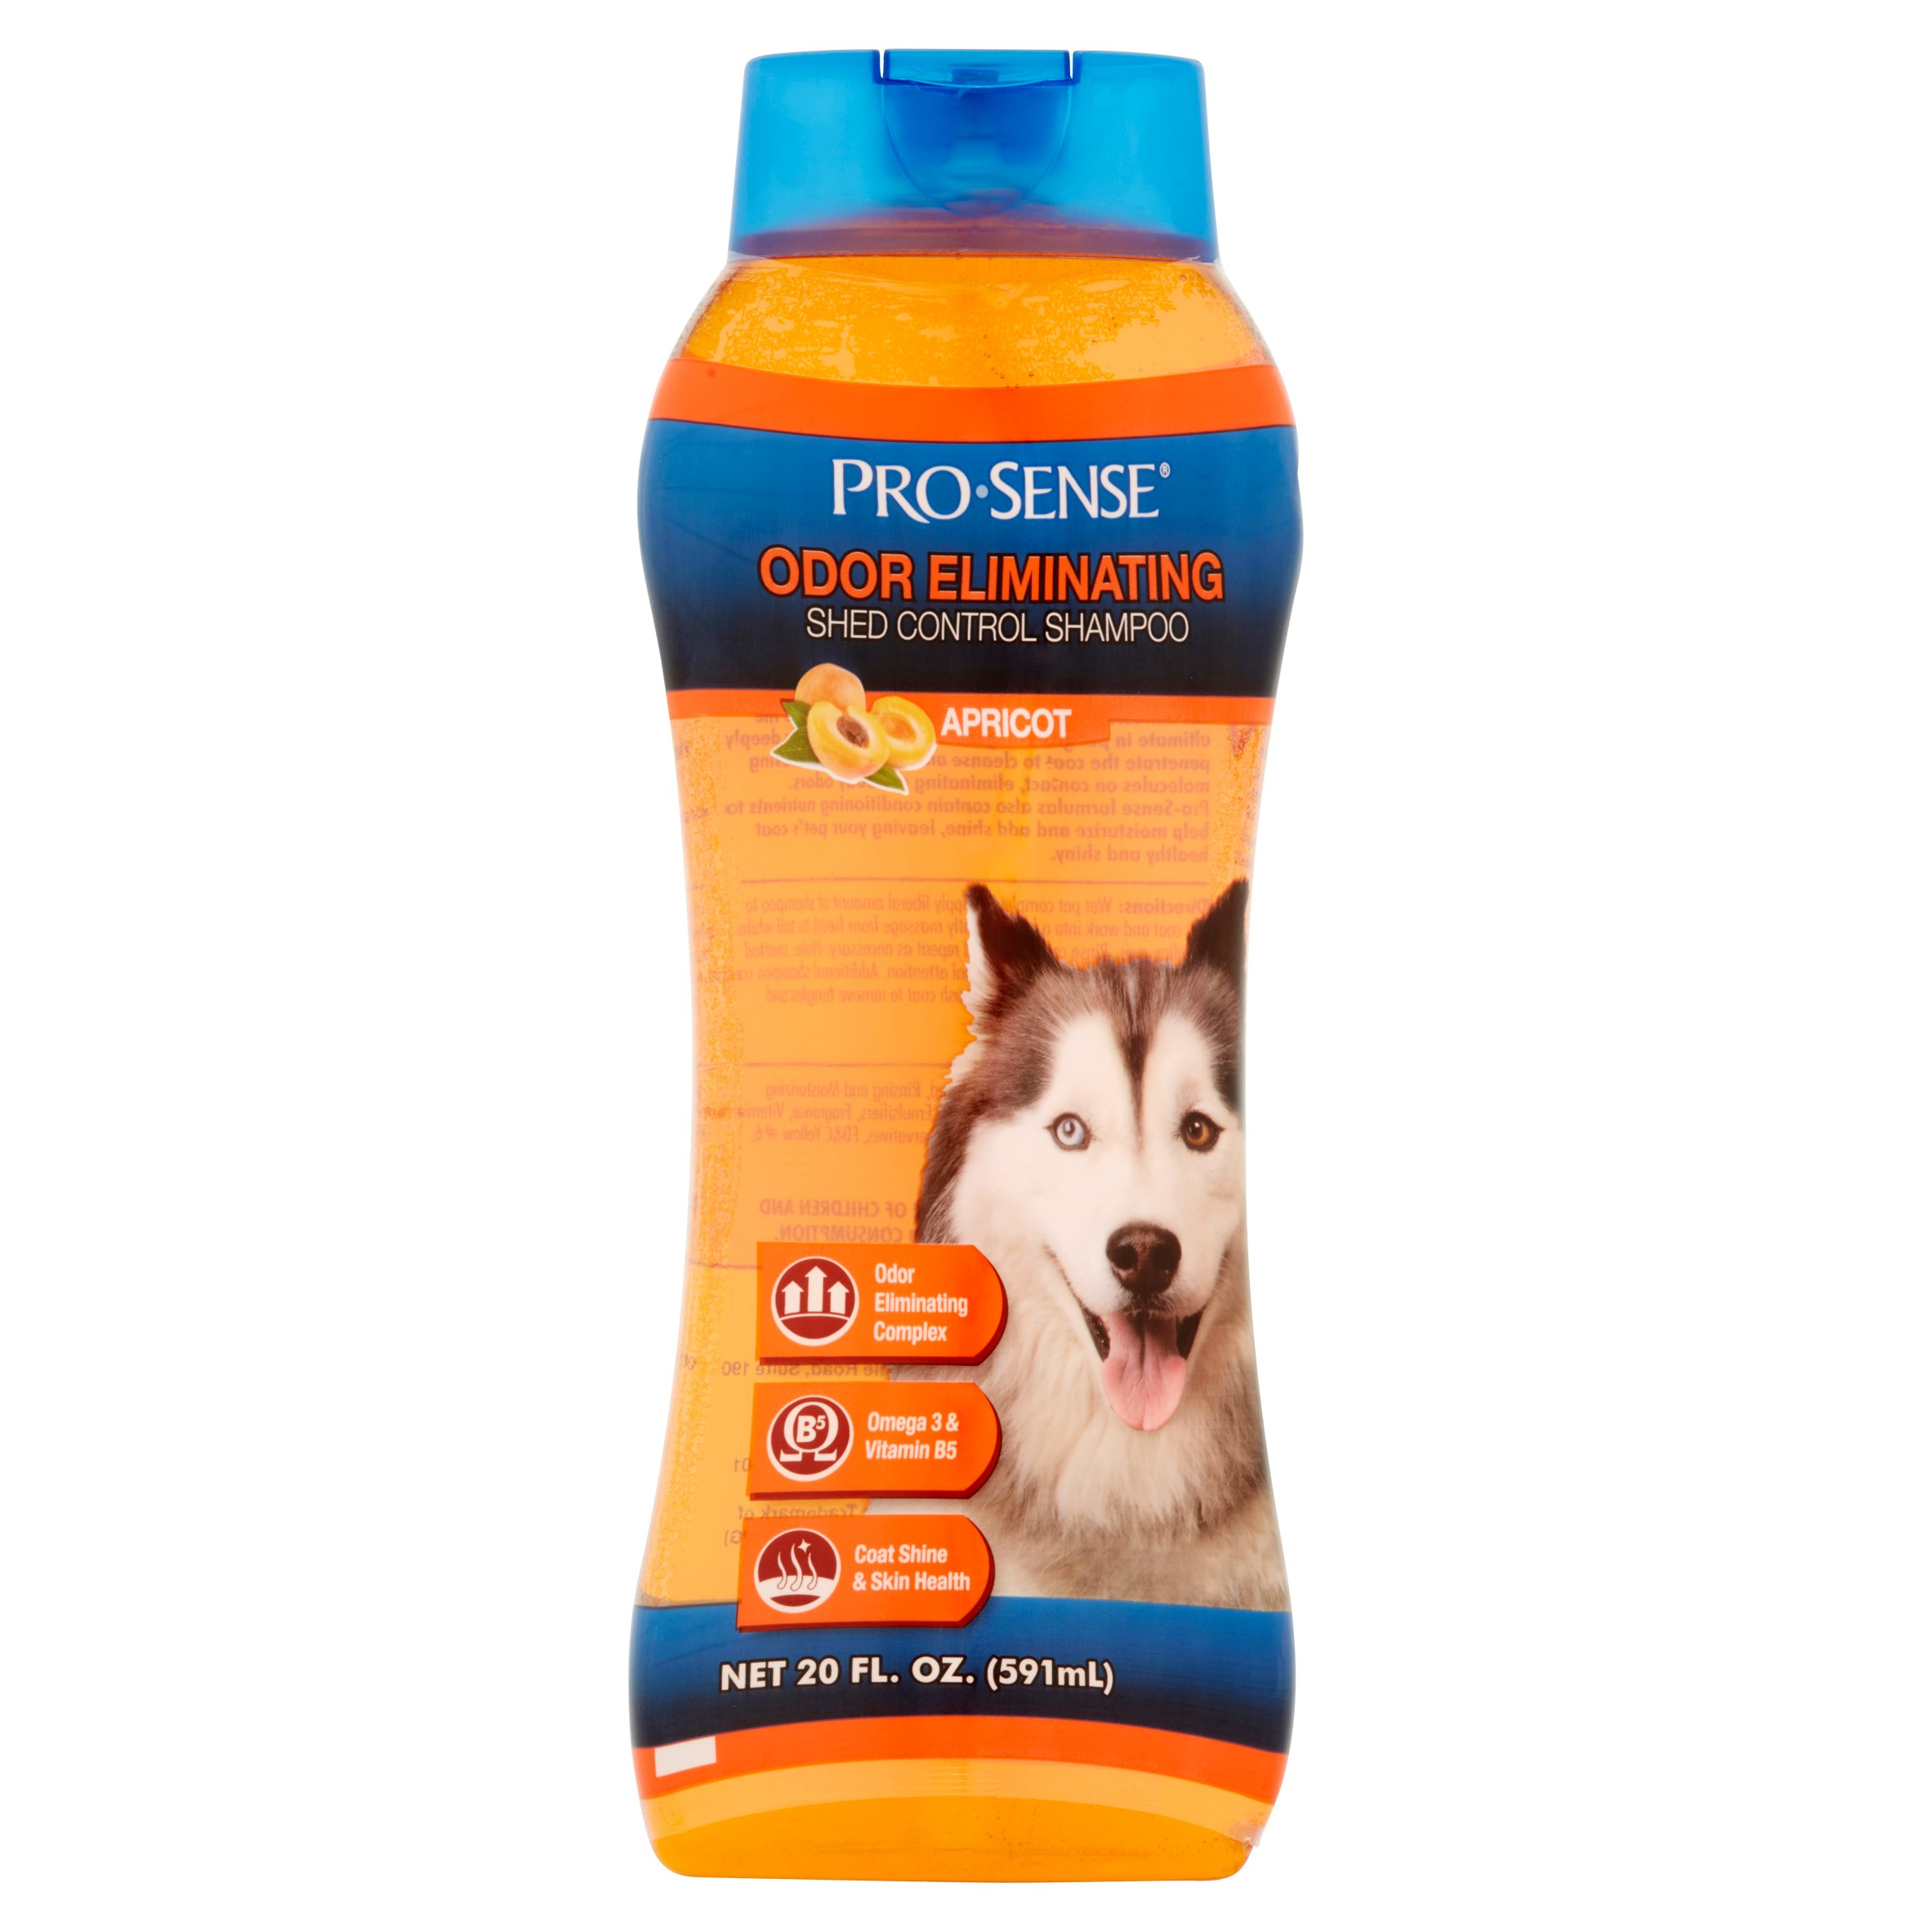 Pro-sense odor eliminating shed control shampoo apricot scent, 20-oz bottle